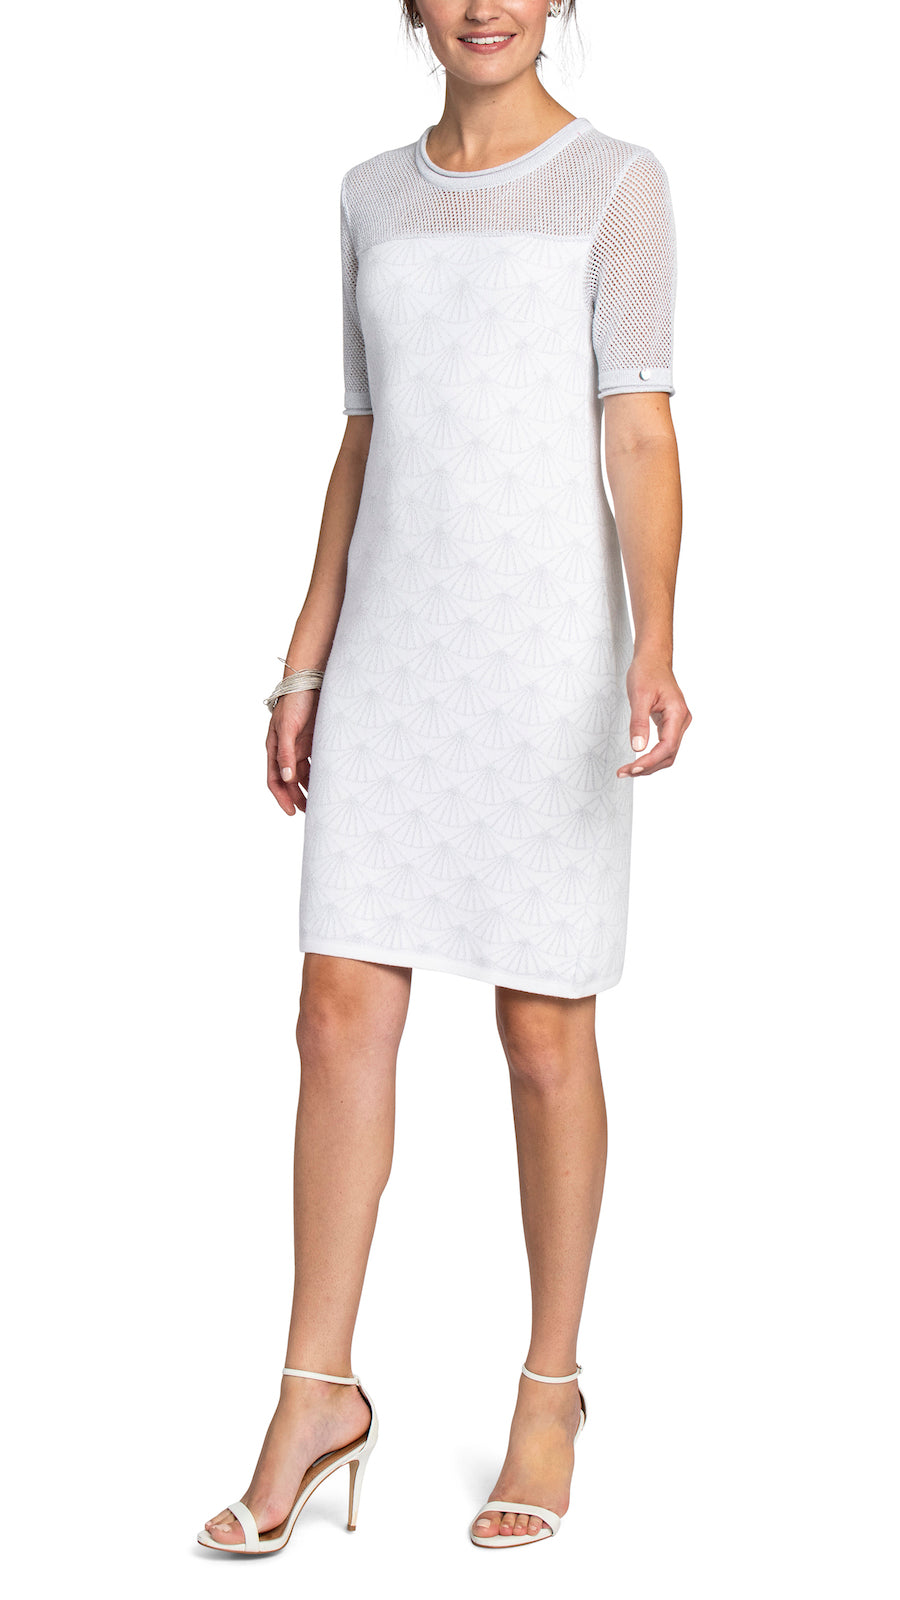 CONTEMPO Jasmine Jacquard Knitted Dress, White/Silver